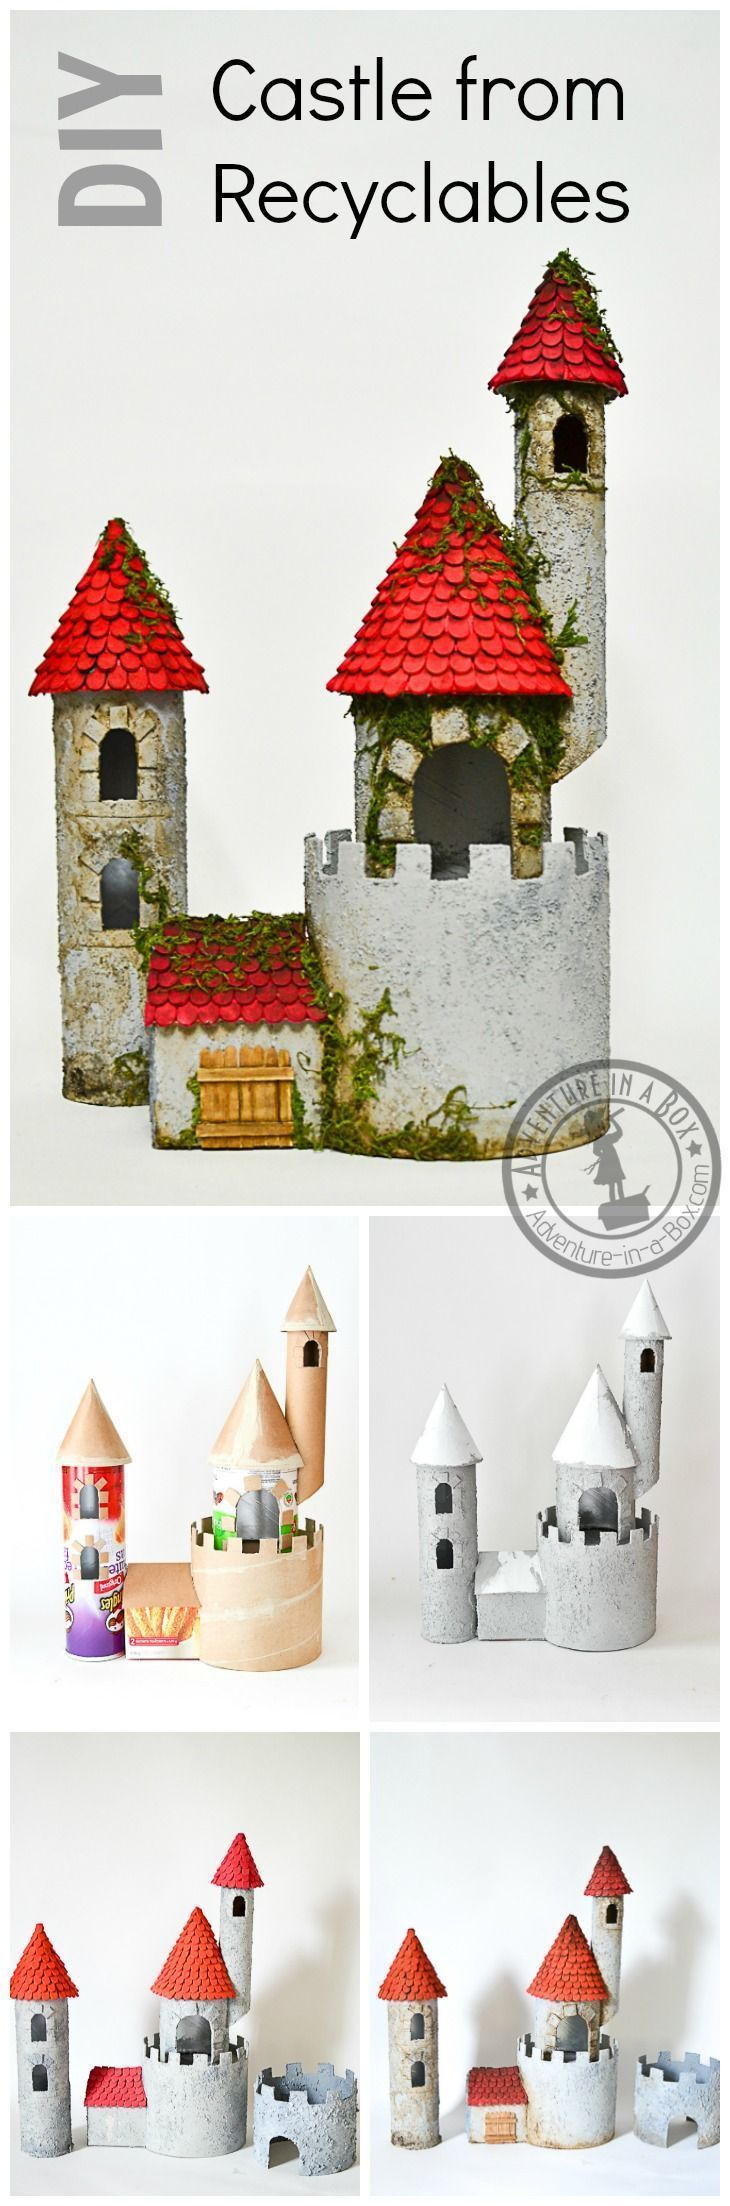 Christmas decorations out of paper towel rolls - Diy Make A Cardboard Castle From Recyclable Materials Build An Impressive Toy Castle Out Of